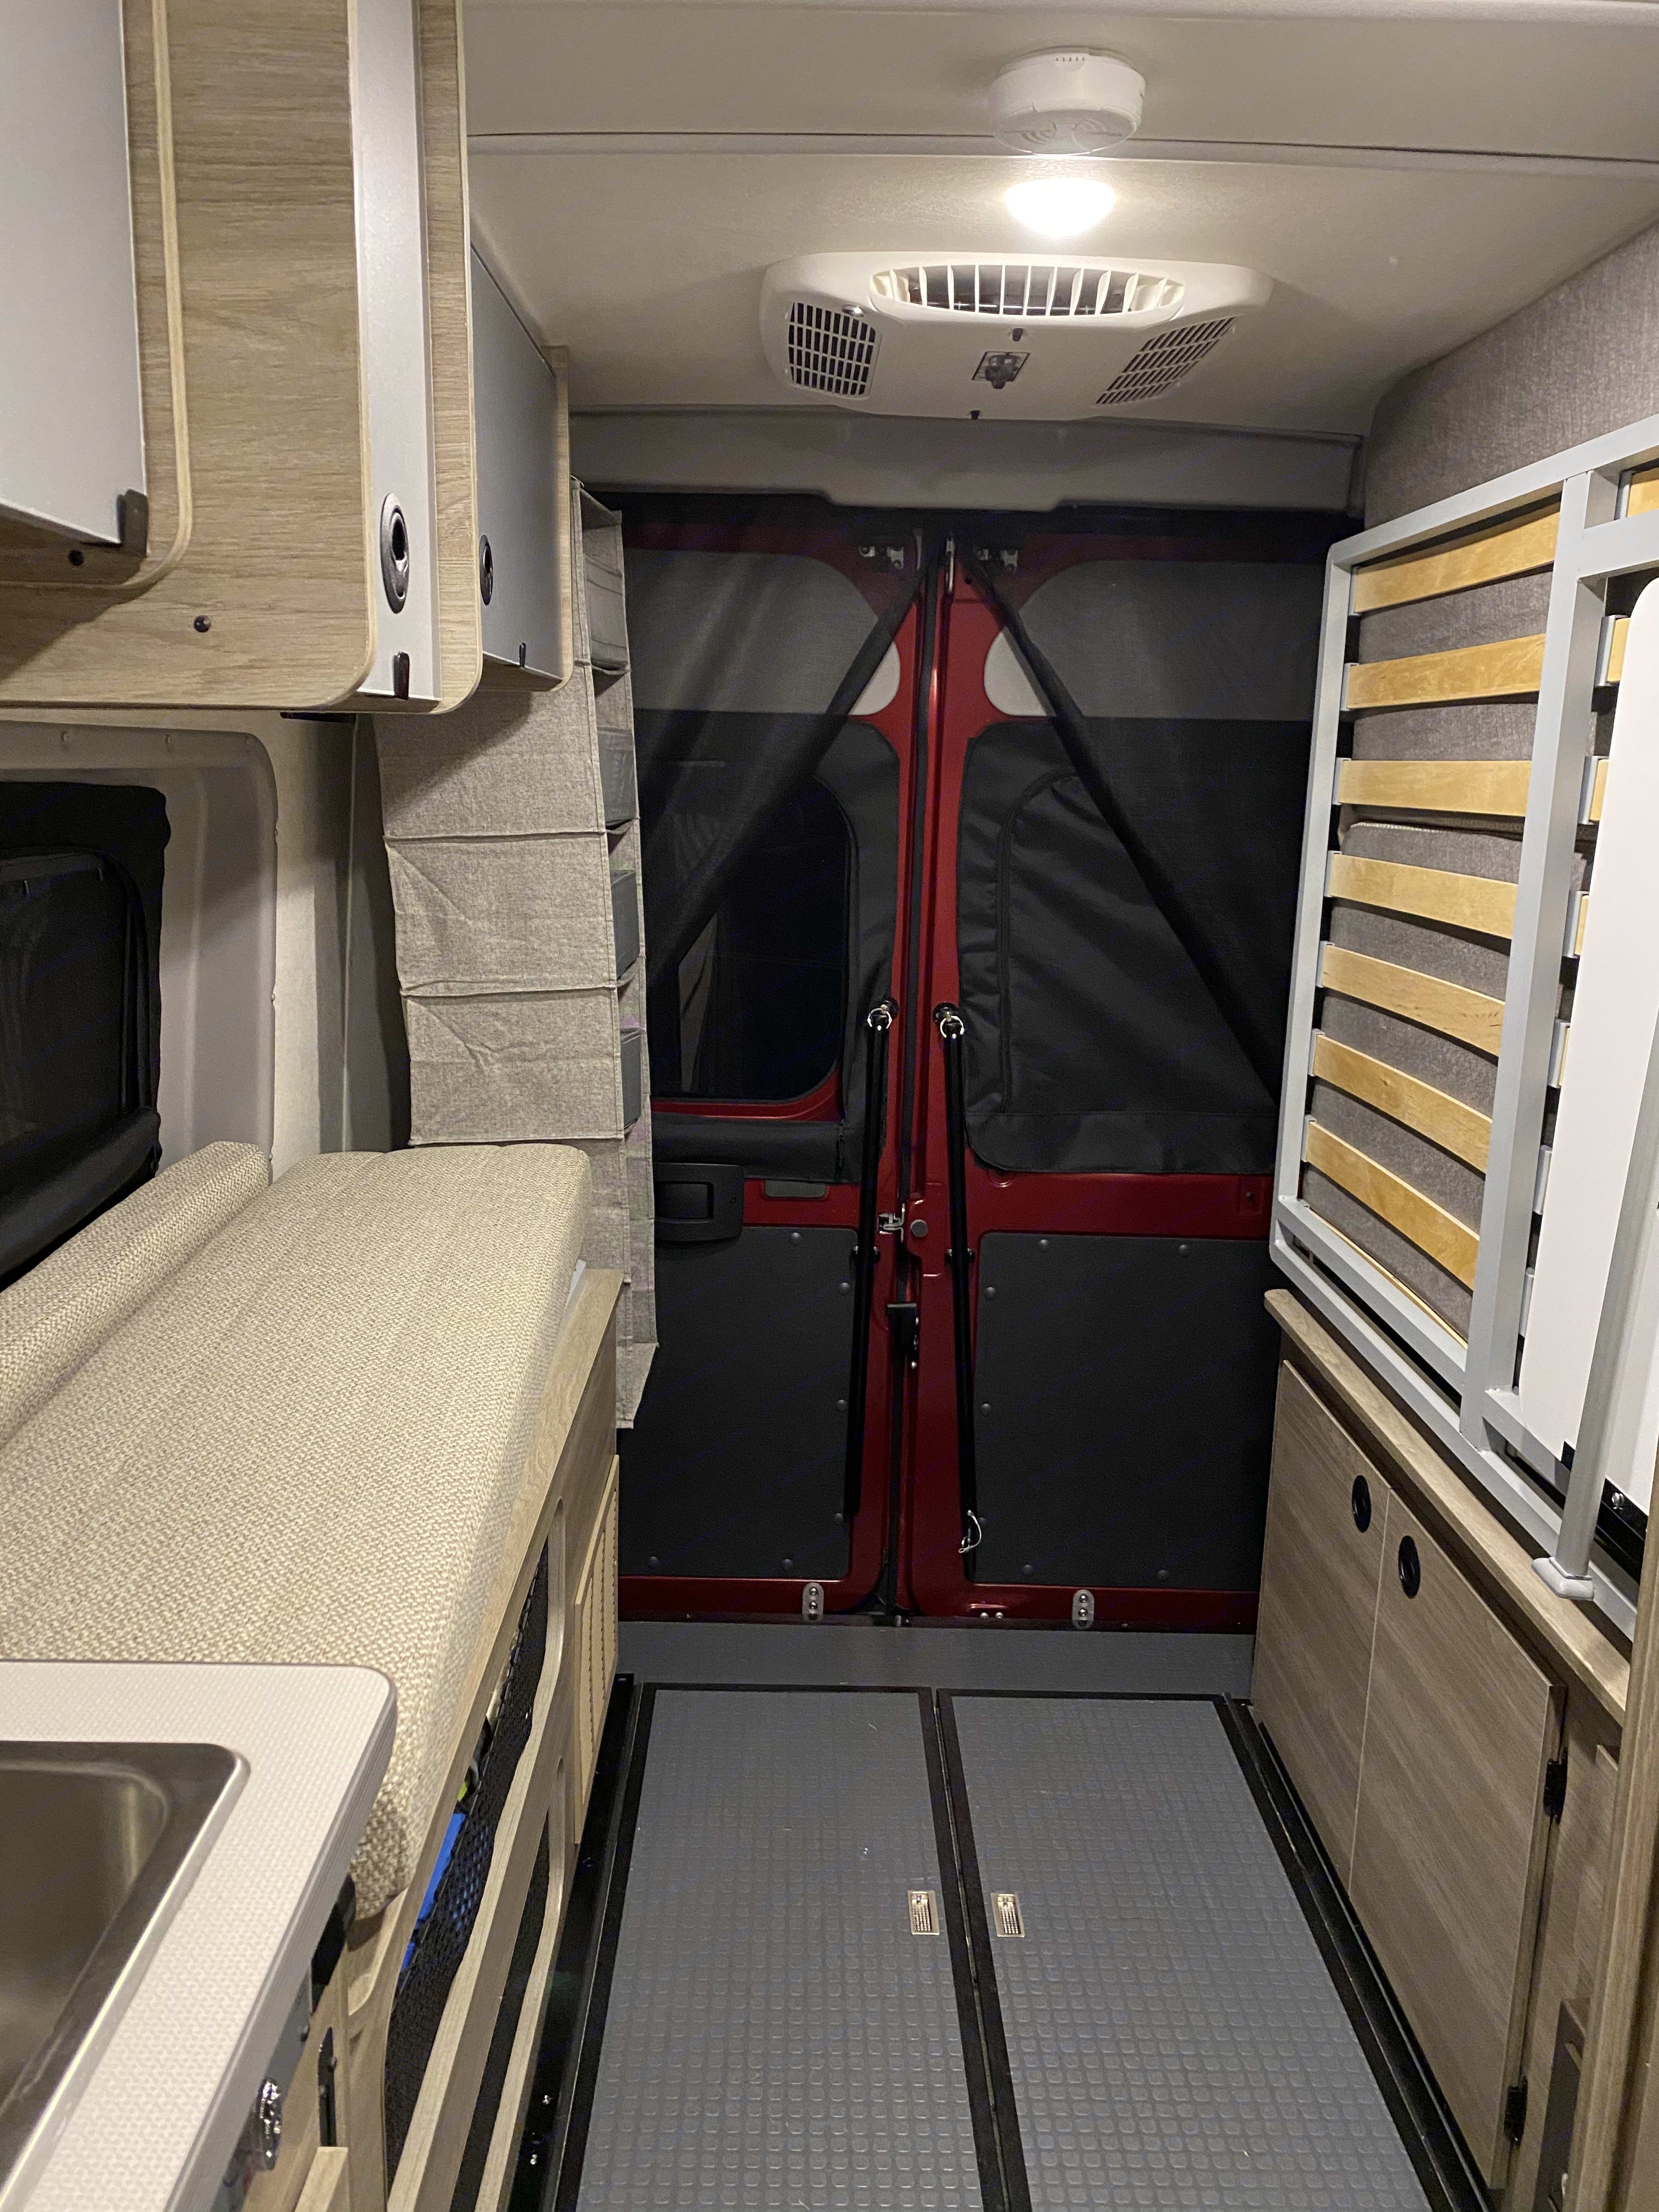 This is what the area looks like when the Murphy bed is up and locked.. Winnebago Solis 2021